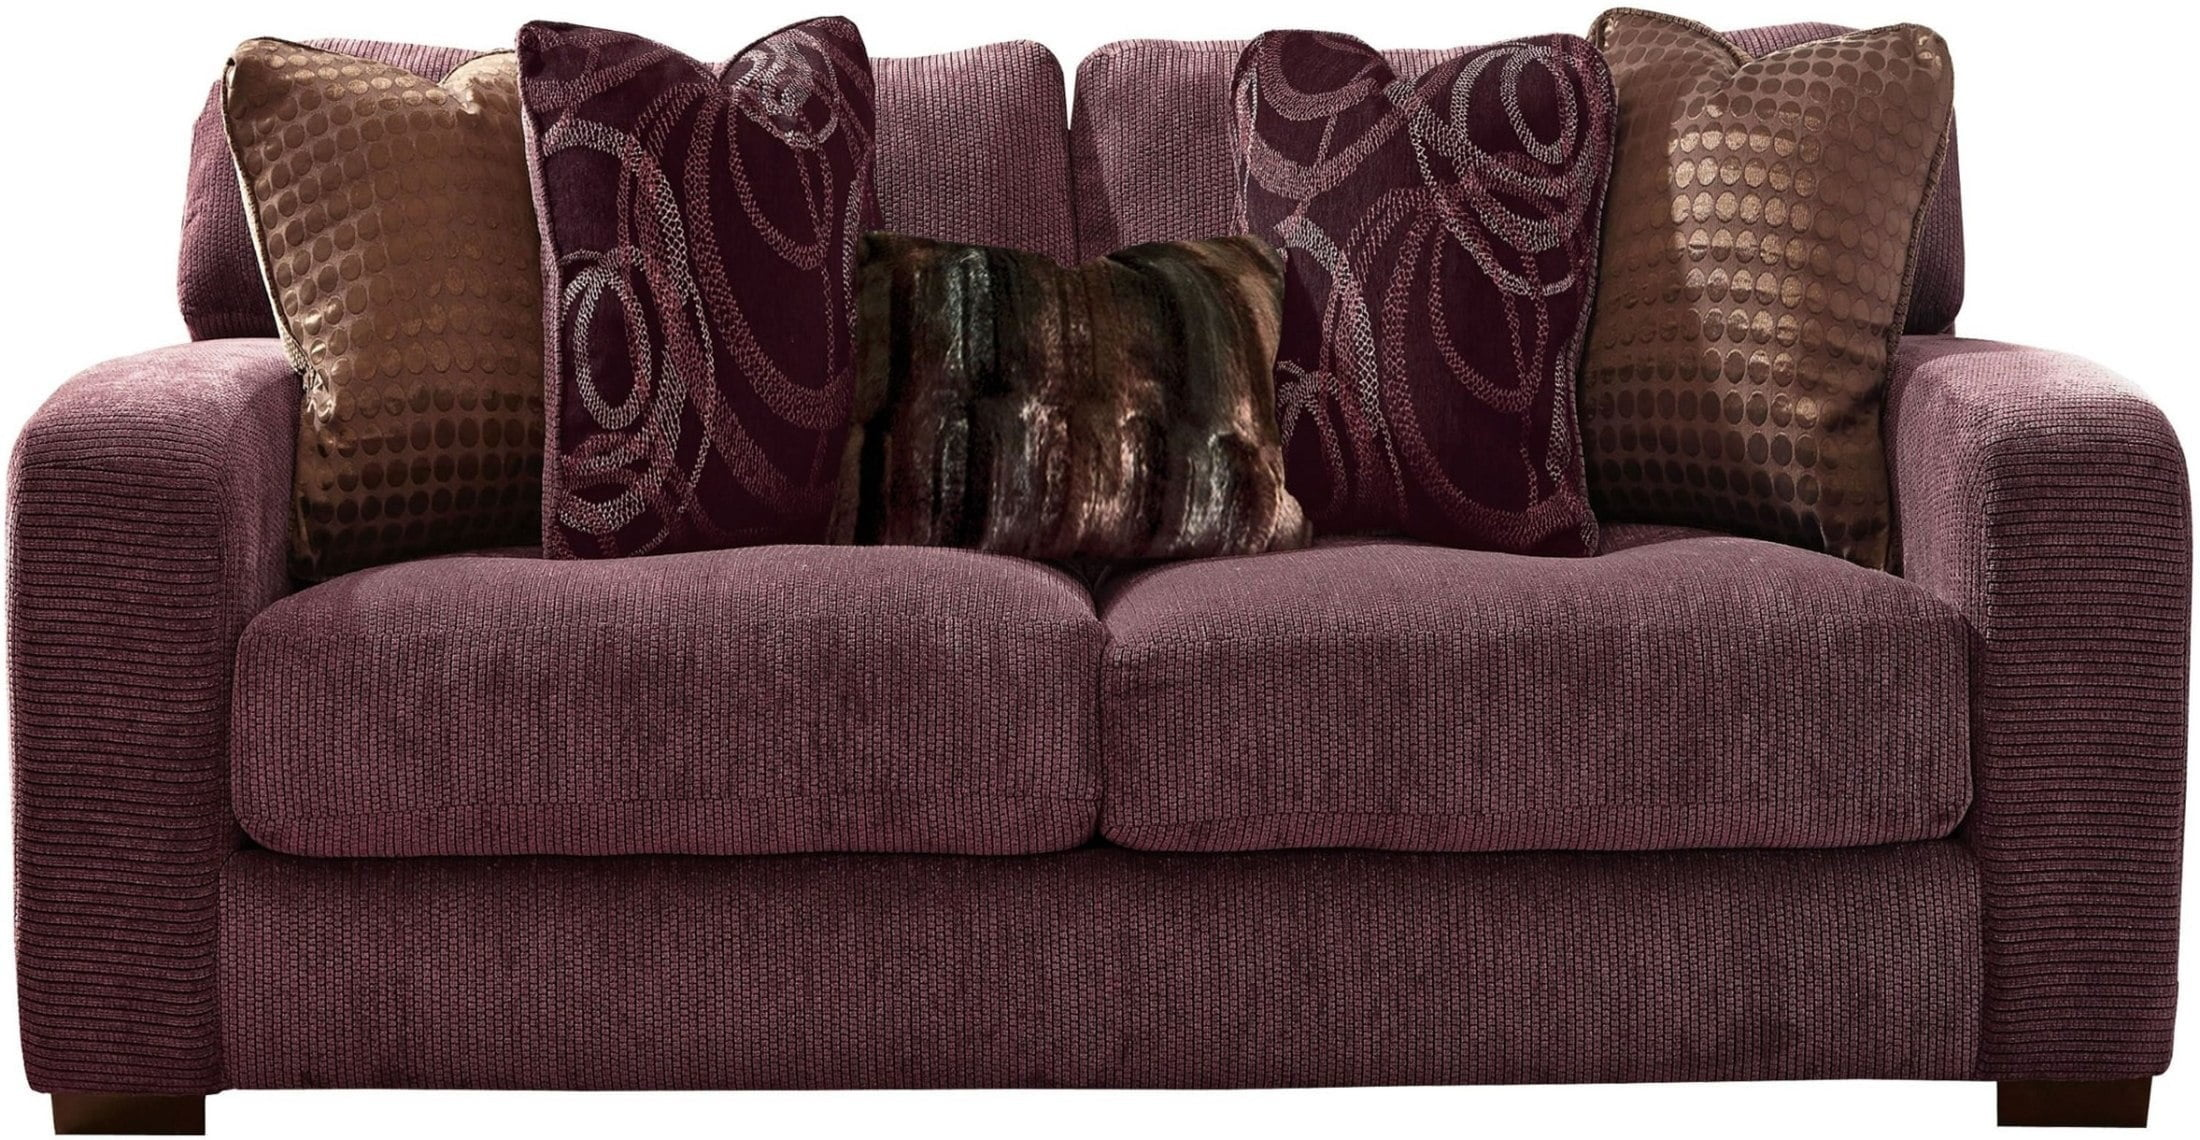 stock out seater p asp loveseat plum purple clara of sofa